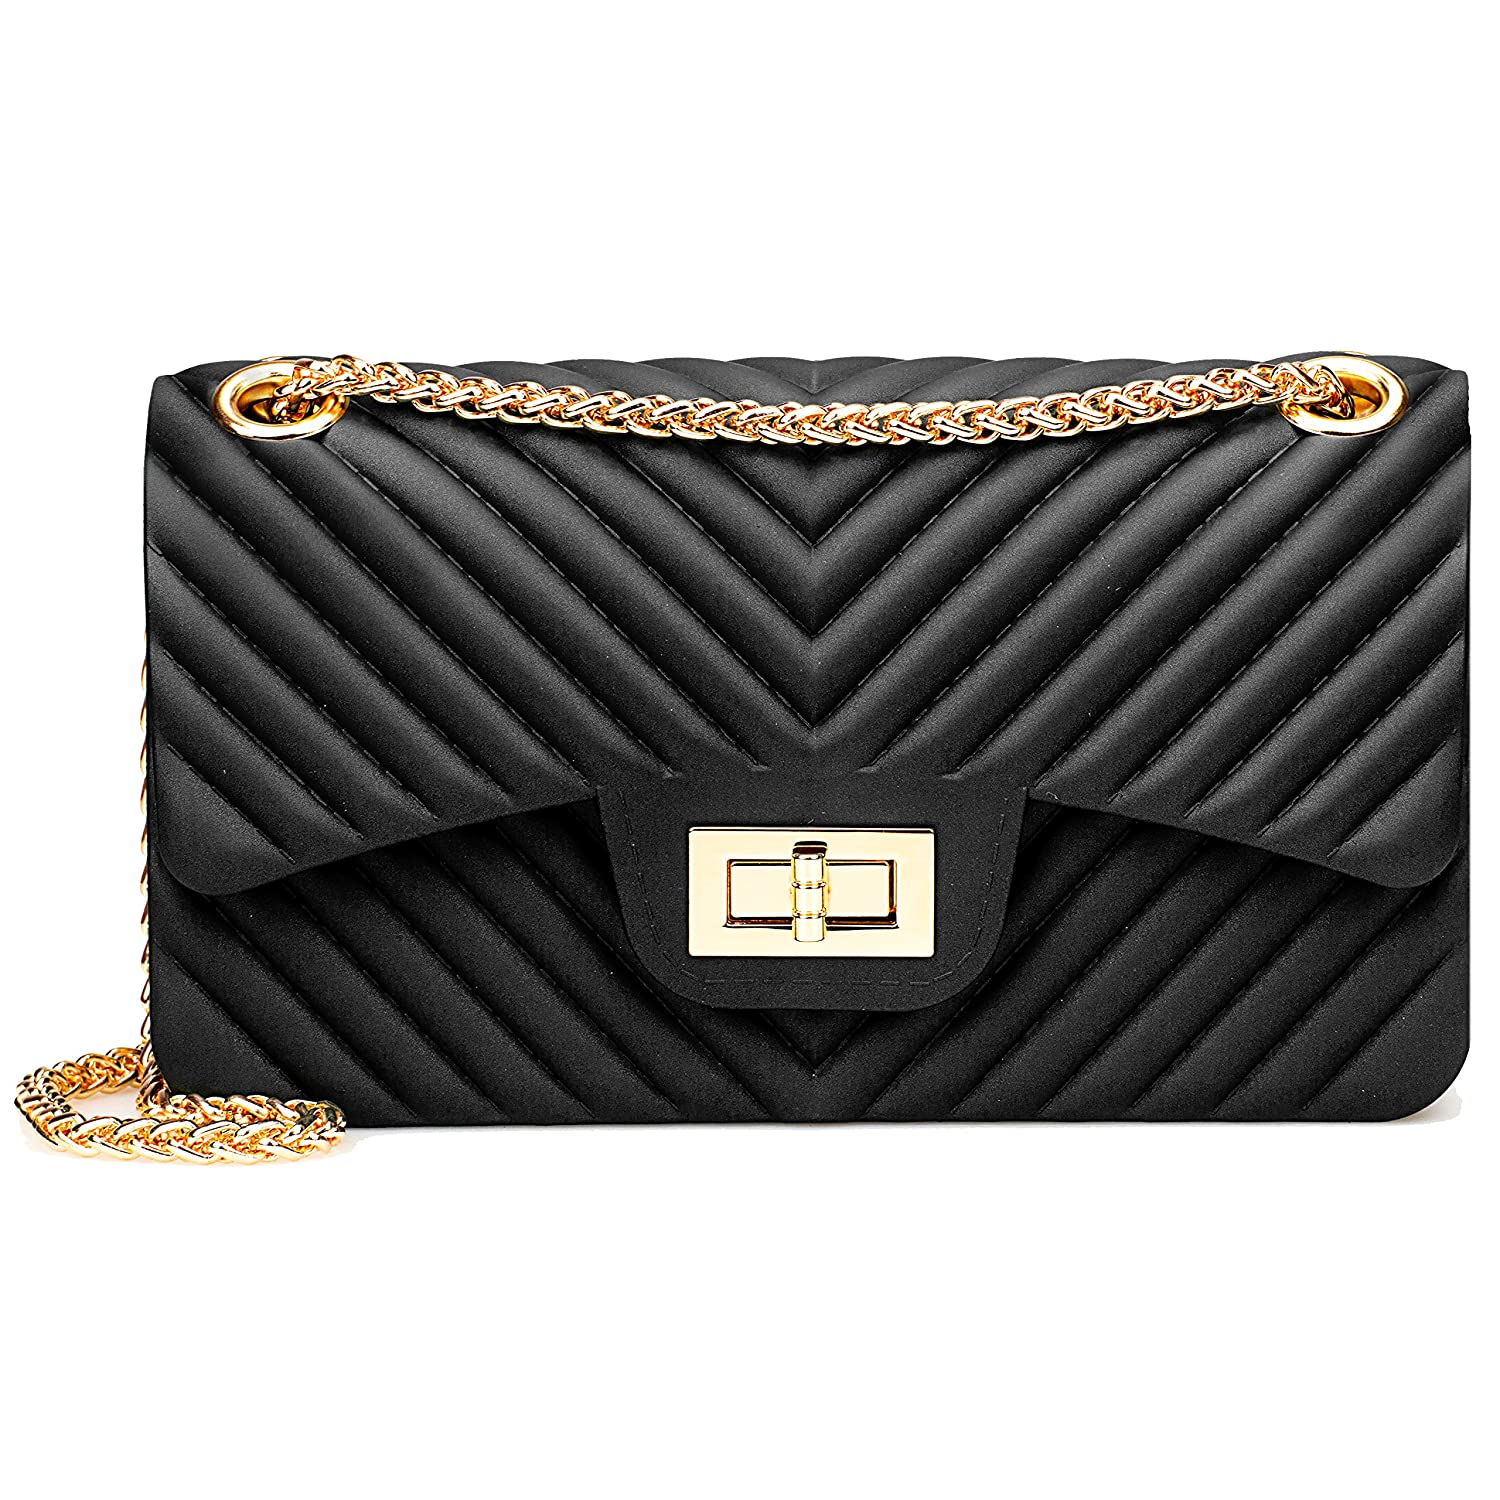 f5c064990556 Women Fashion Shoulder Bag Jelly Clutch Handbag Quilted Crossbody Bag with  Chain - Black  Handbags  Amazon.com